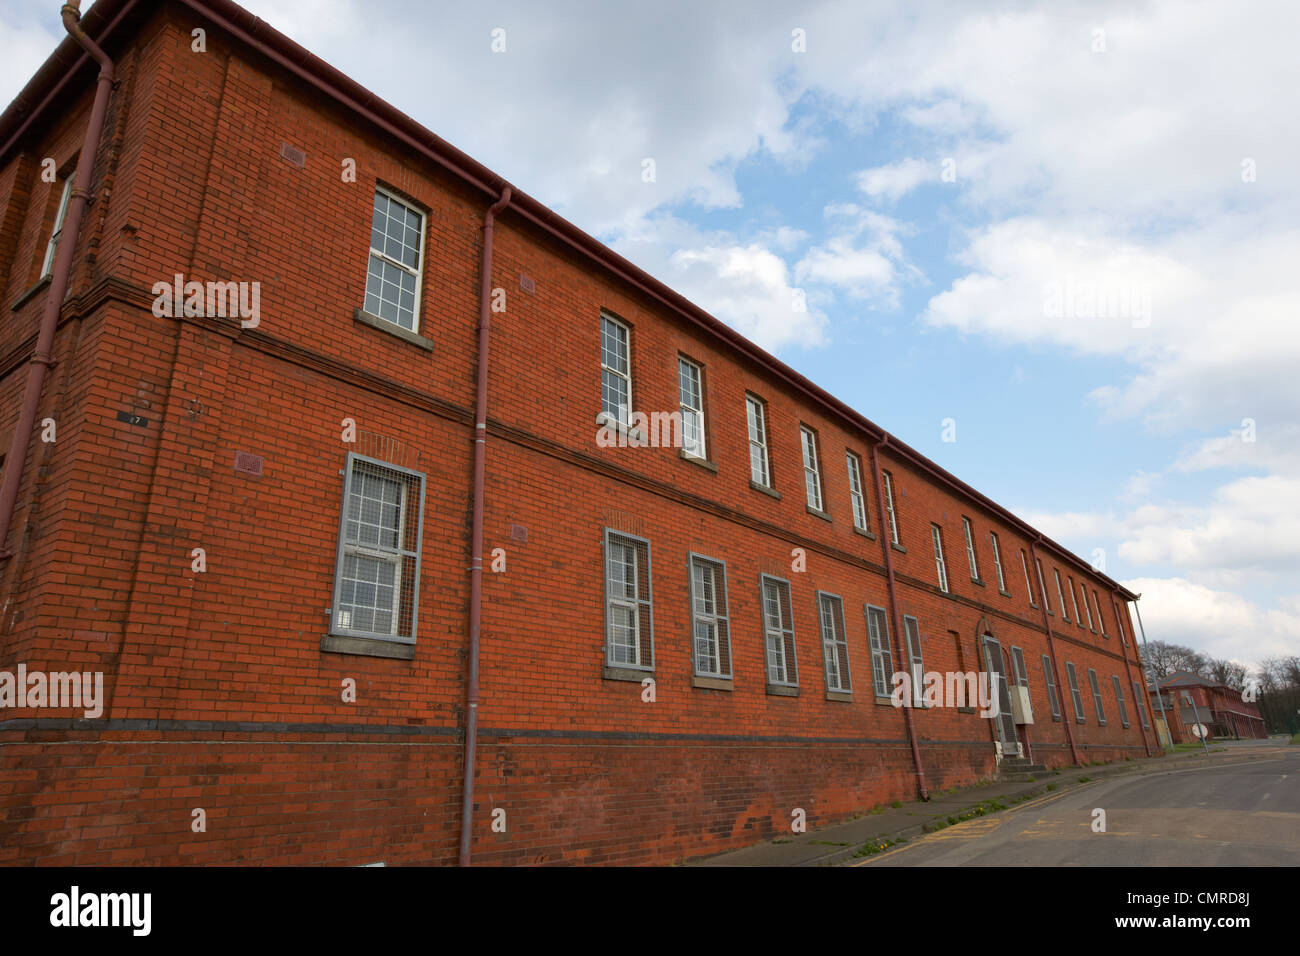 old red brick victorian british army barrack house in former ebrington barracks british military base Derry city - Stock Image